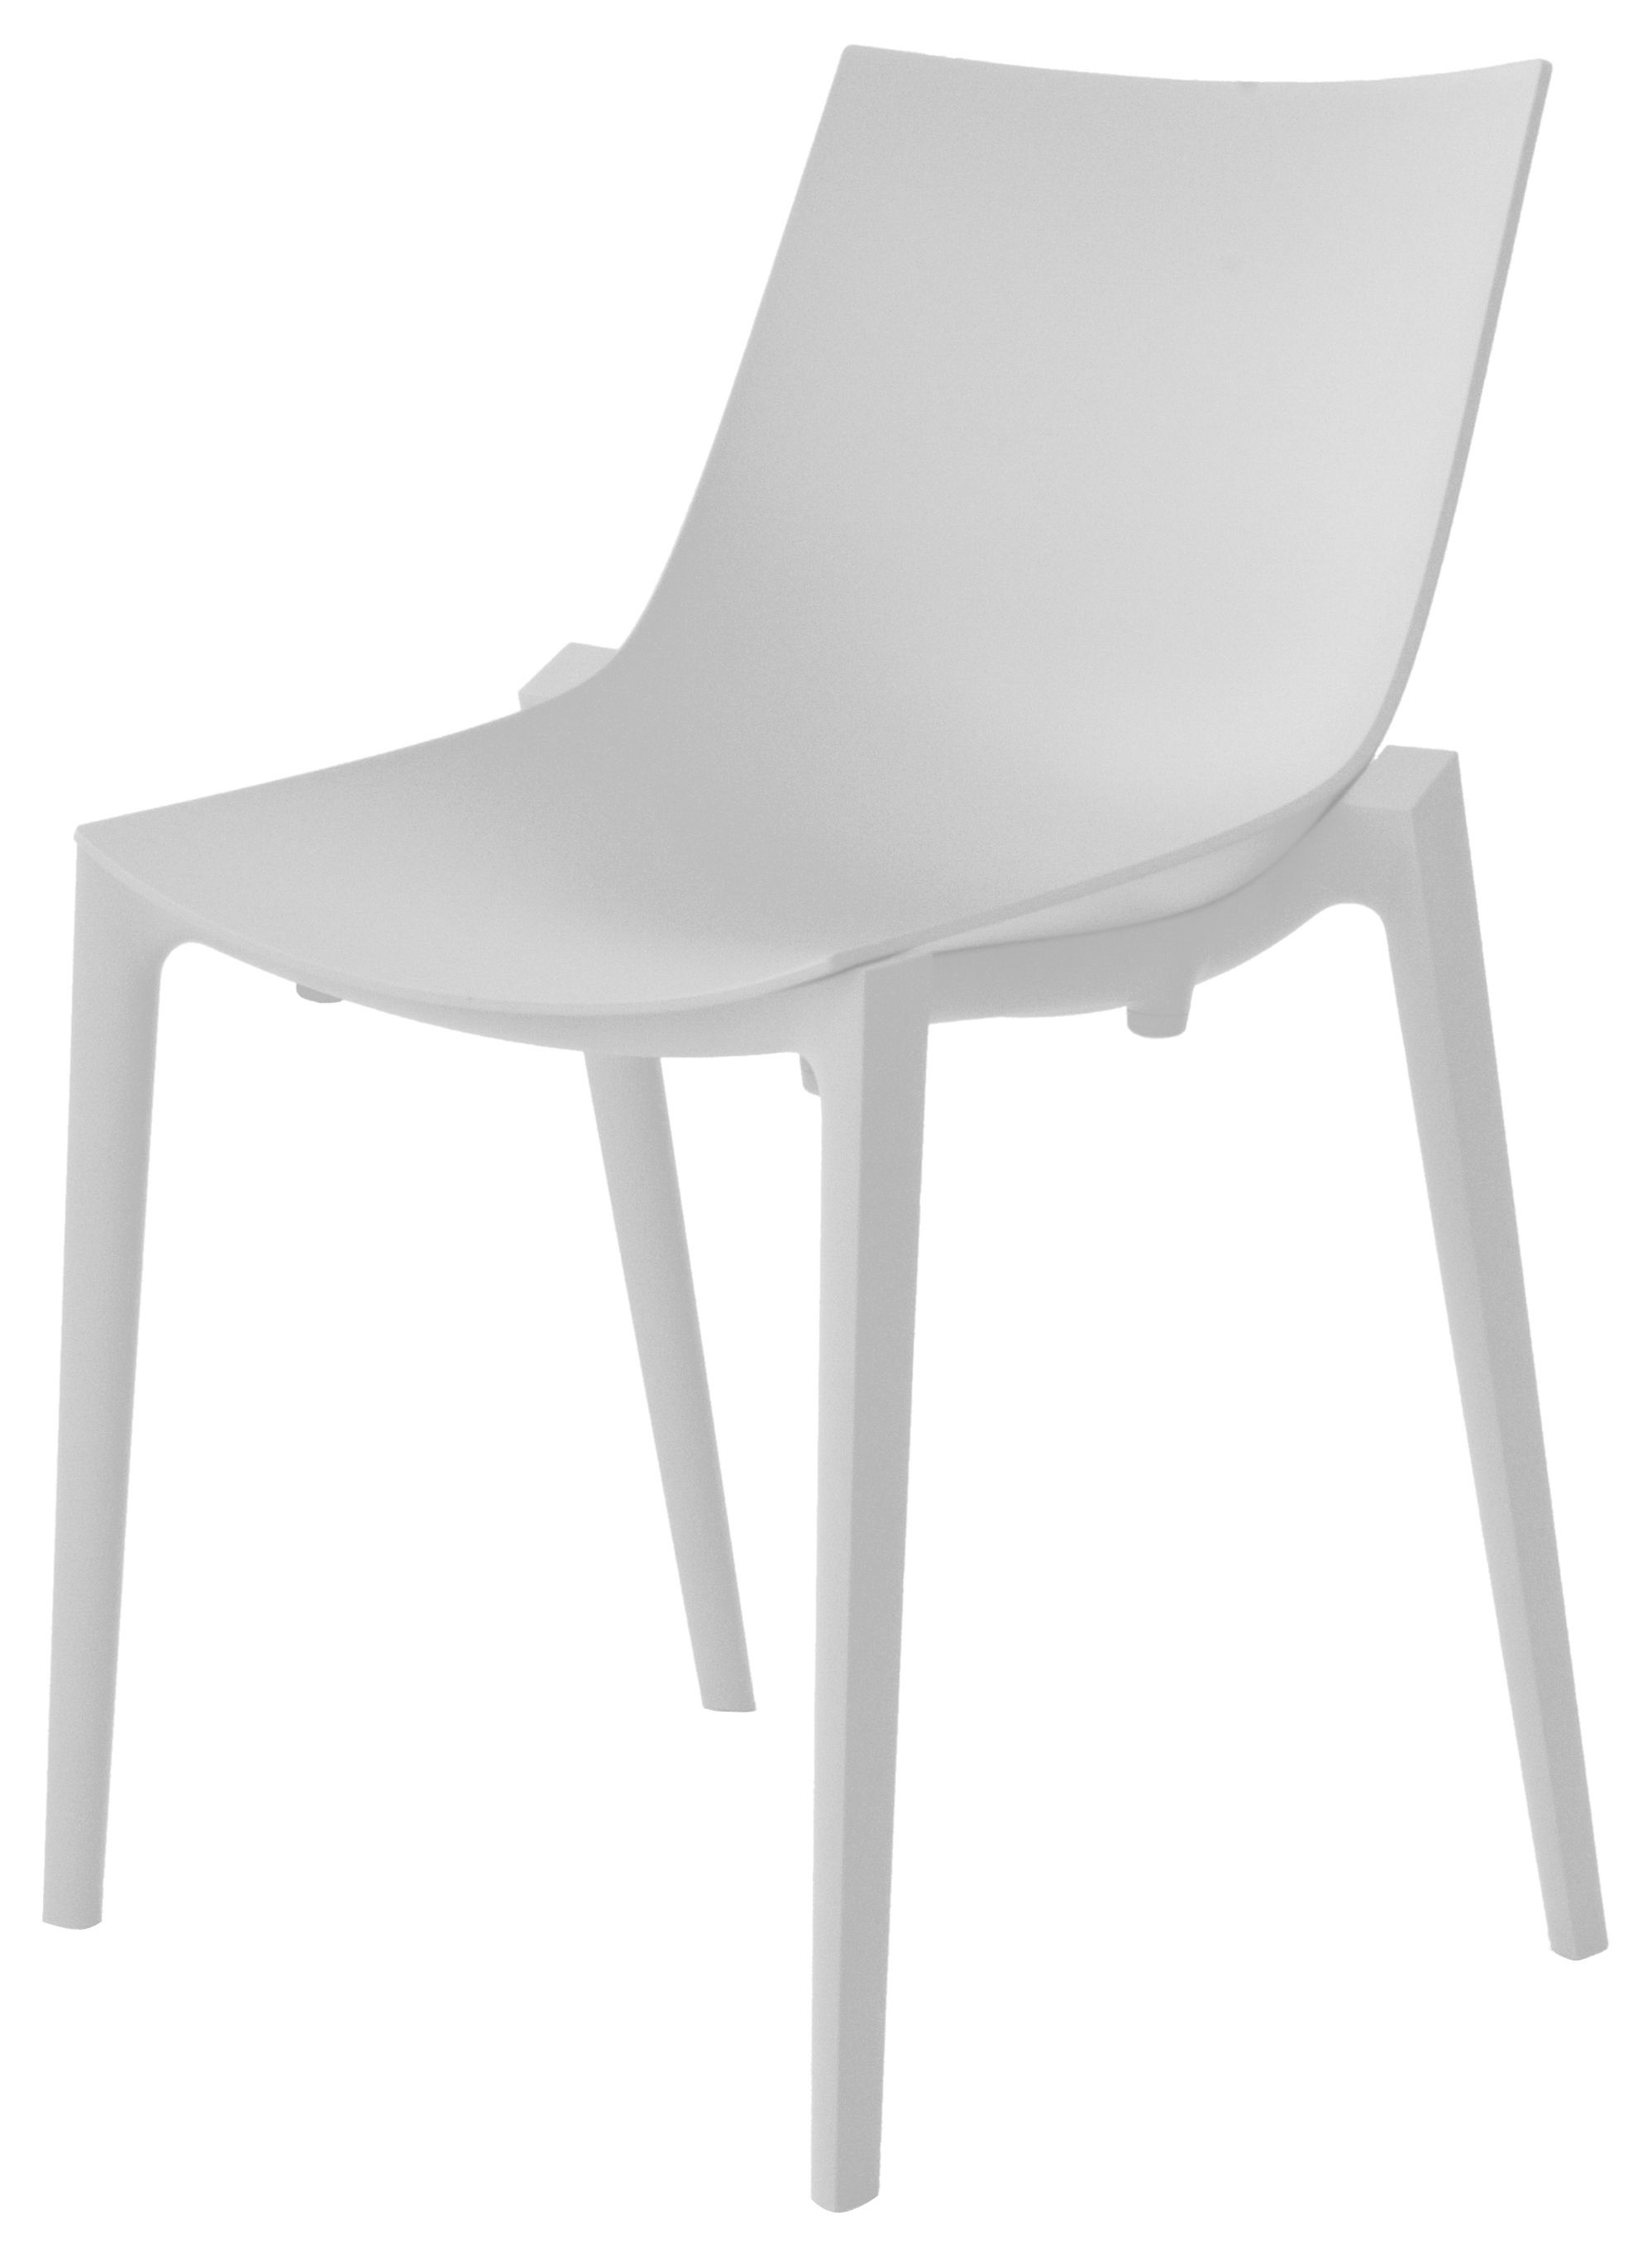 Chaise Philippe Starck Chaise Empilable Zartan Basic Polypropylène Magis